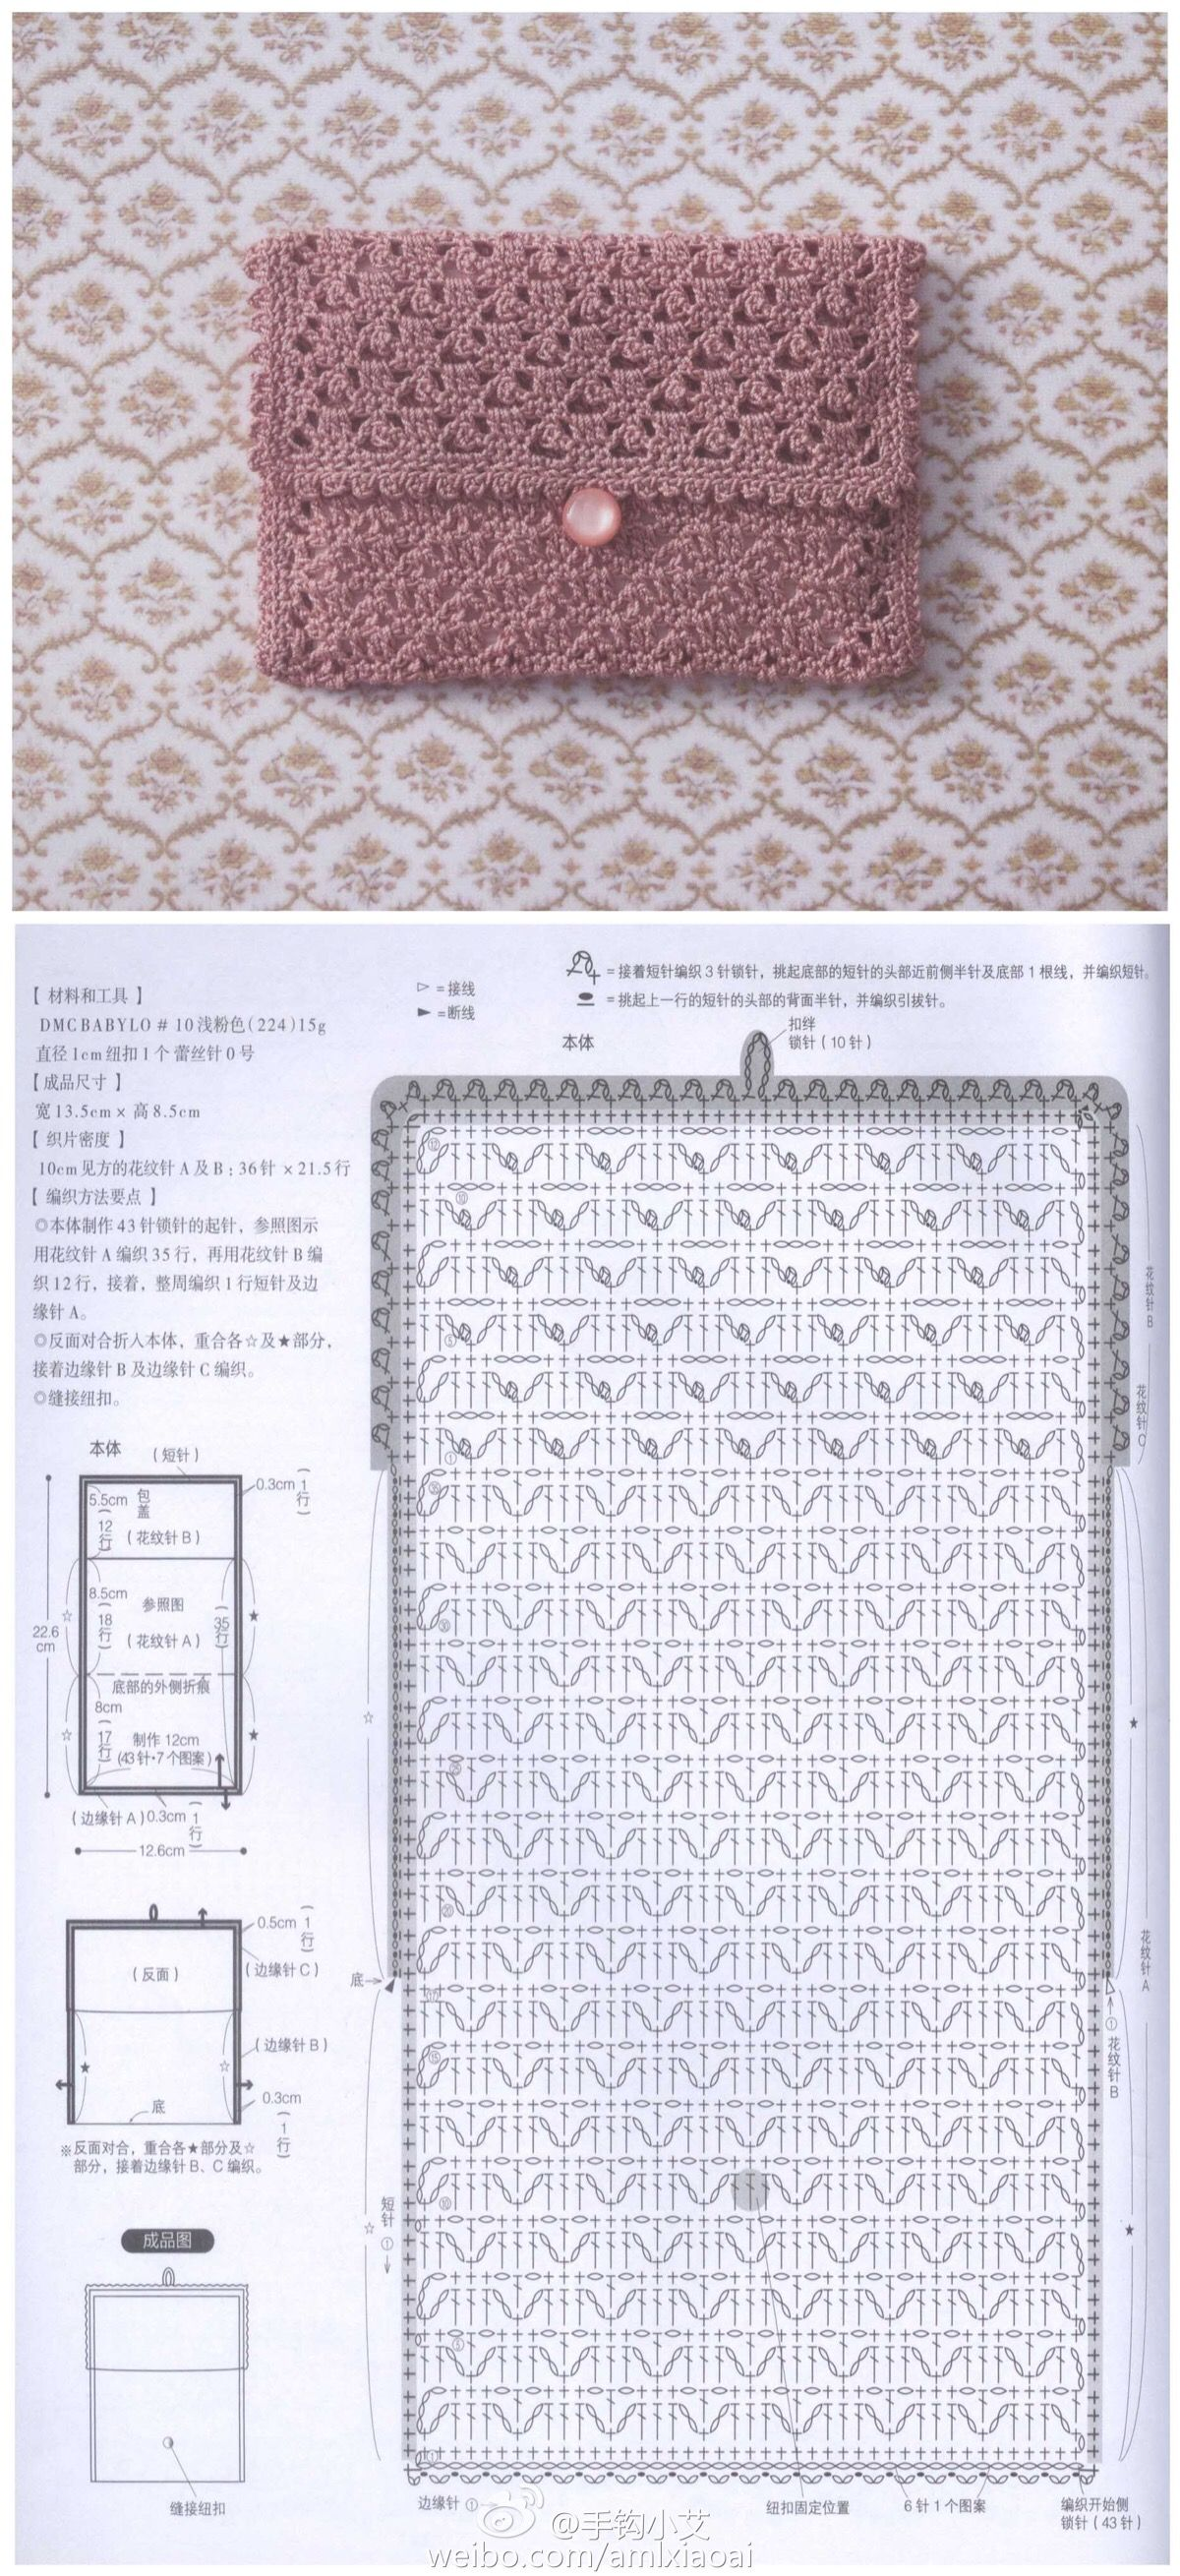 Crochet purse pattern, only diagram , good enough | Ana | Pinterest ...